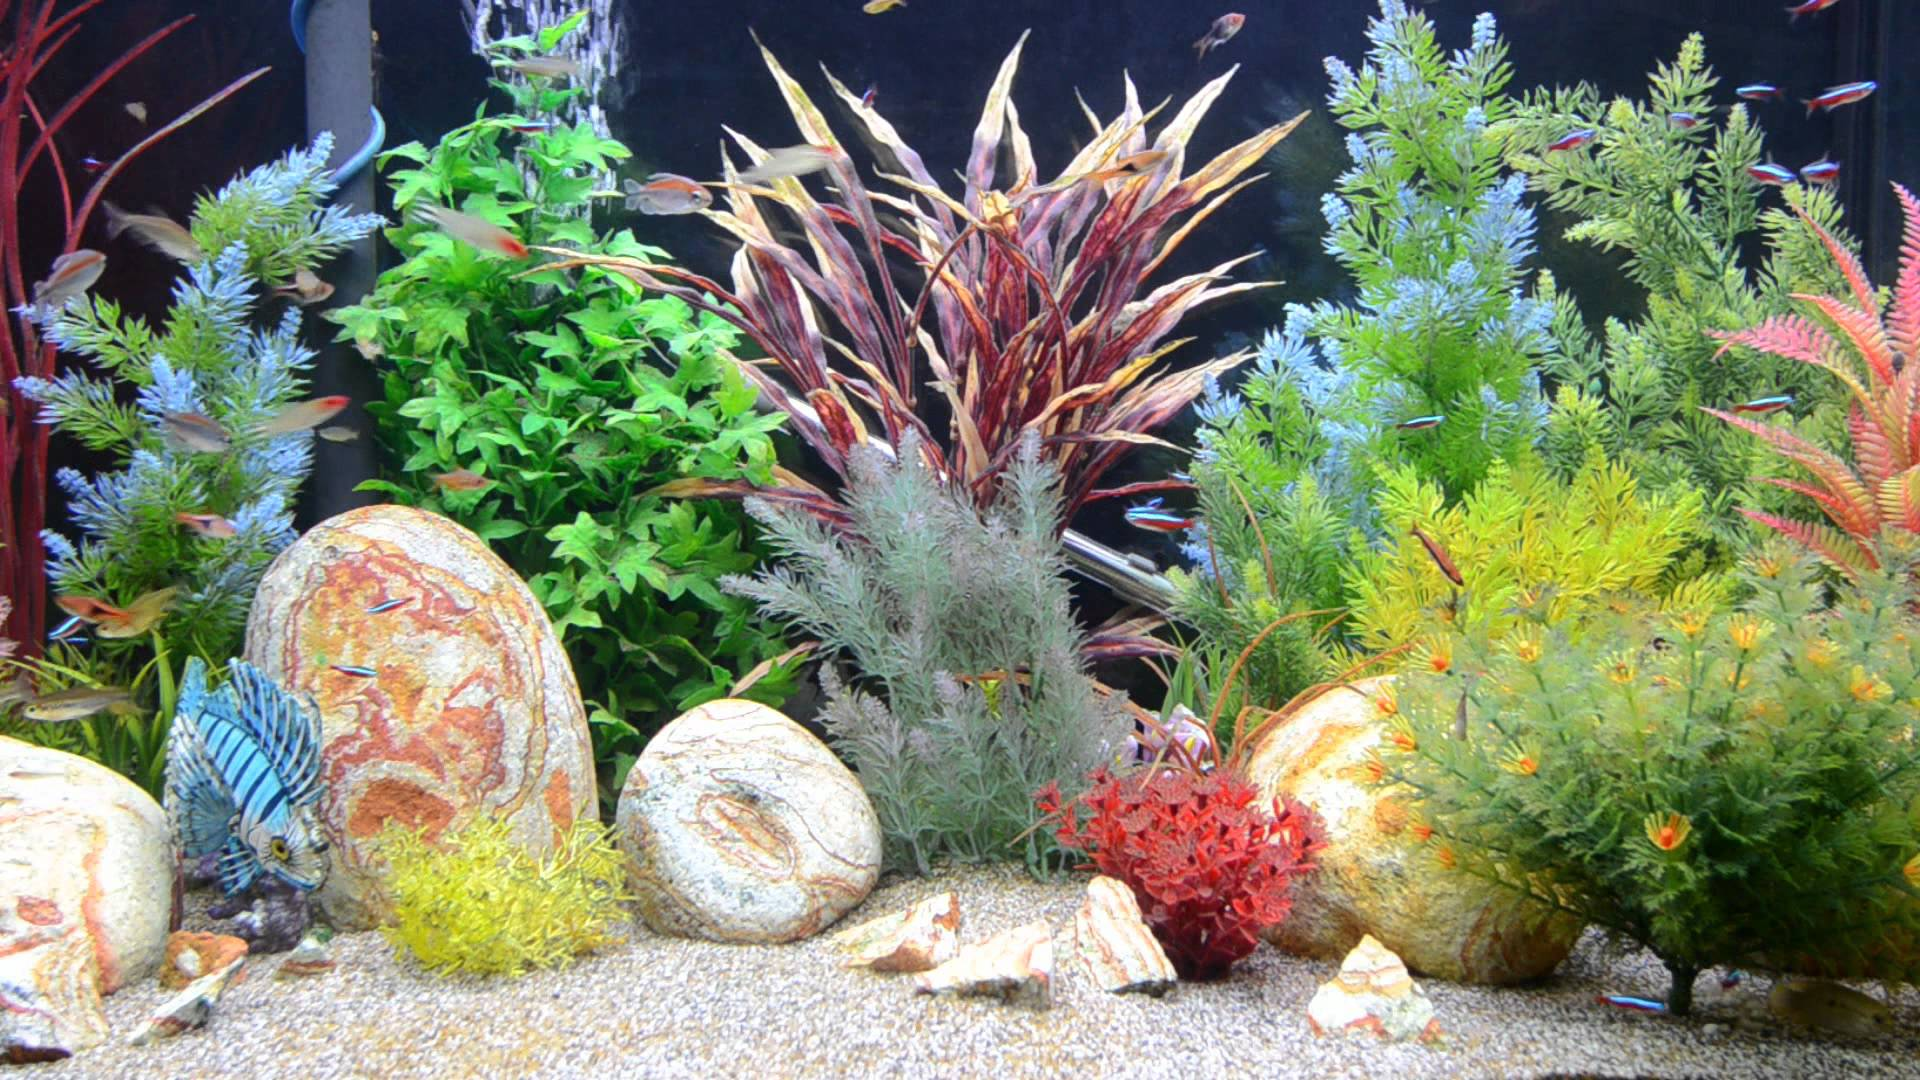 Aquarium screensaver fish tank 1080p hd - Aquarium Screensaver Fishtank 1080p Hd Tropical Aquarium